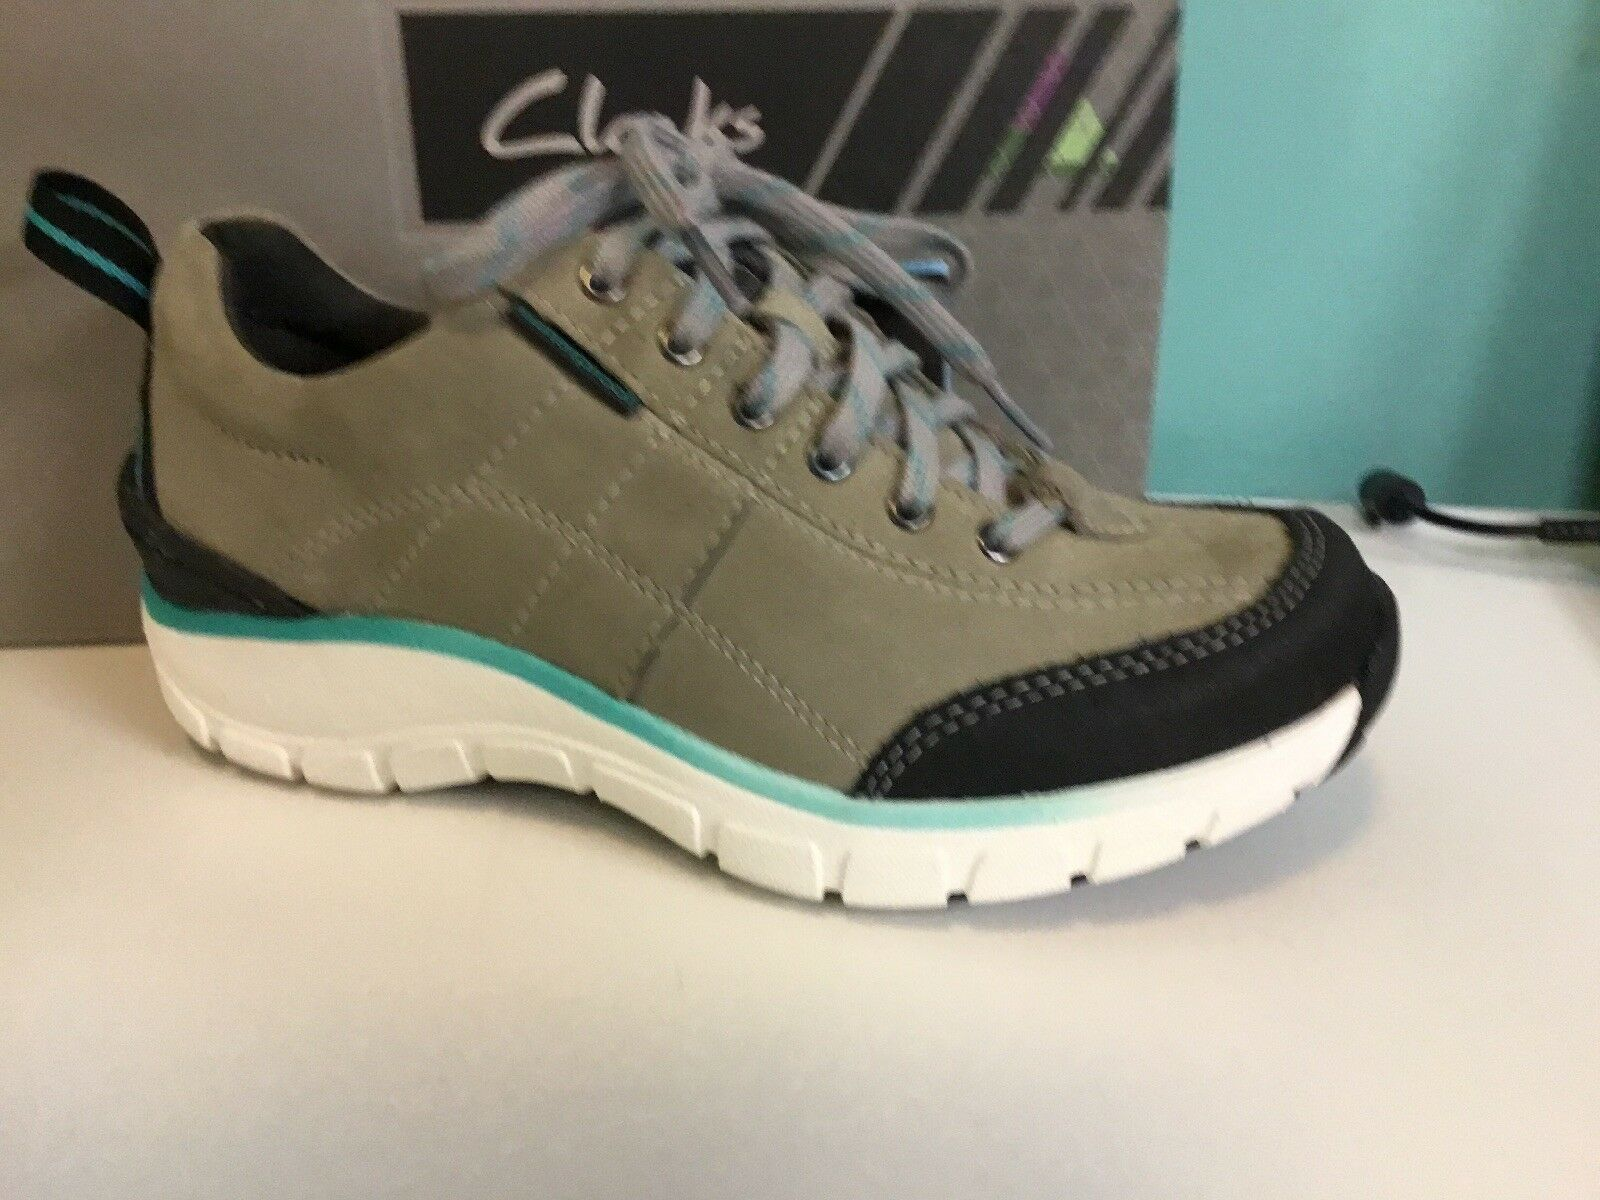 New Womens Clarks Wave Trek Sneakers Size 5.5 5.5 5.5 a40354